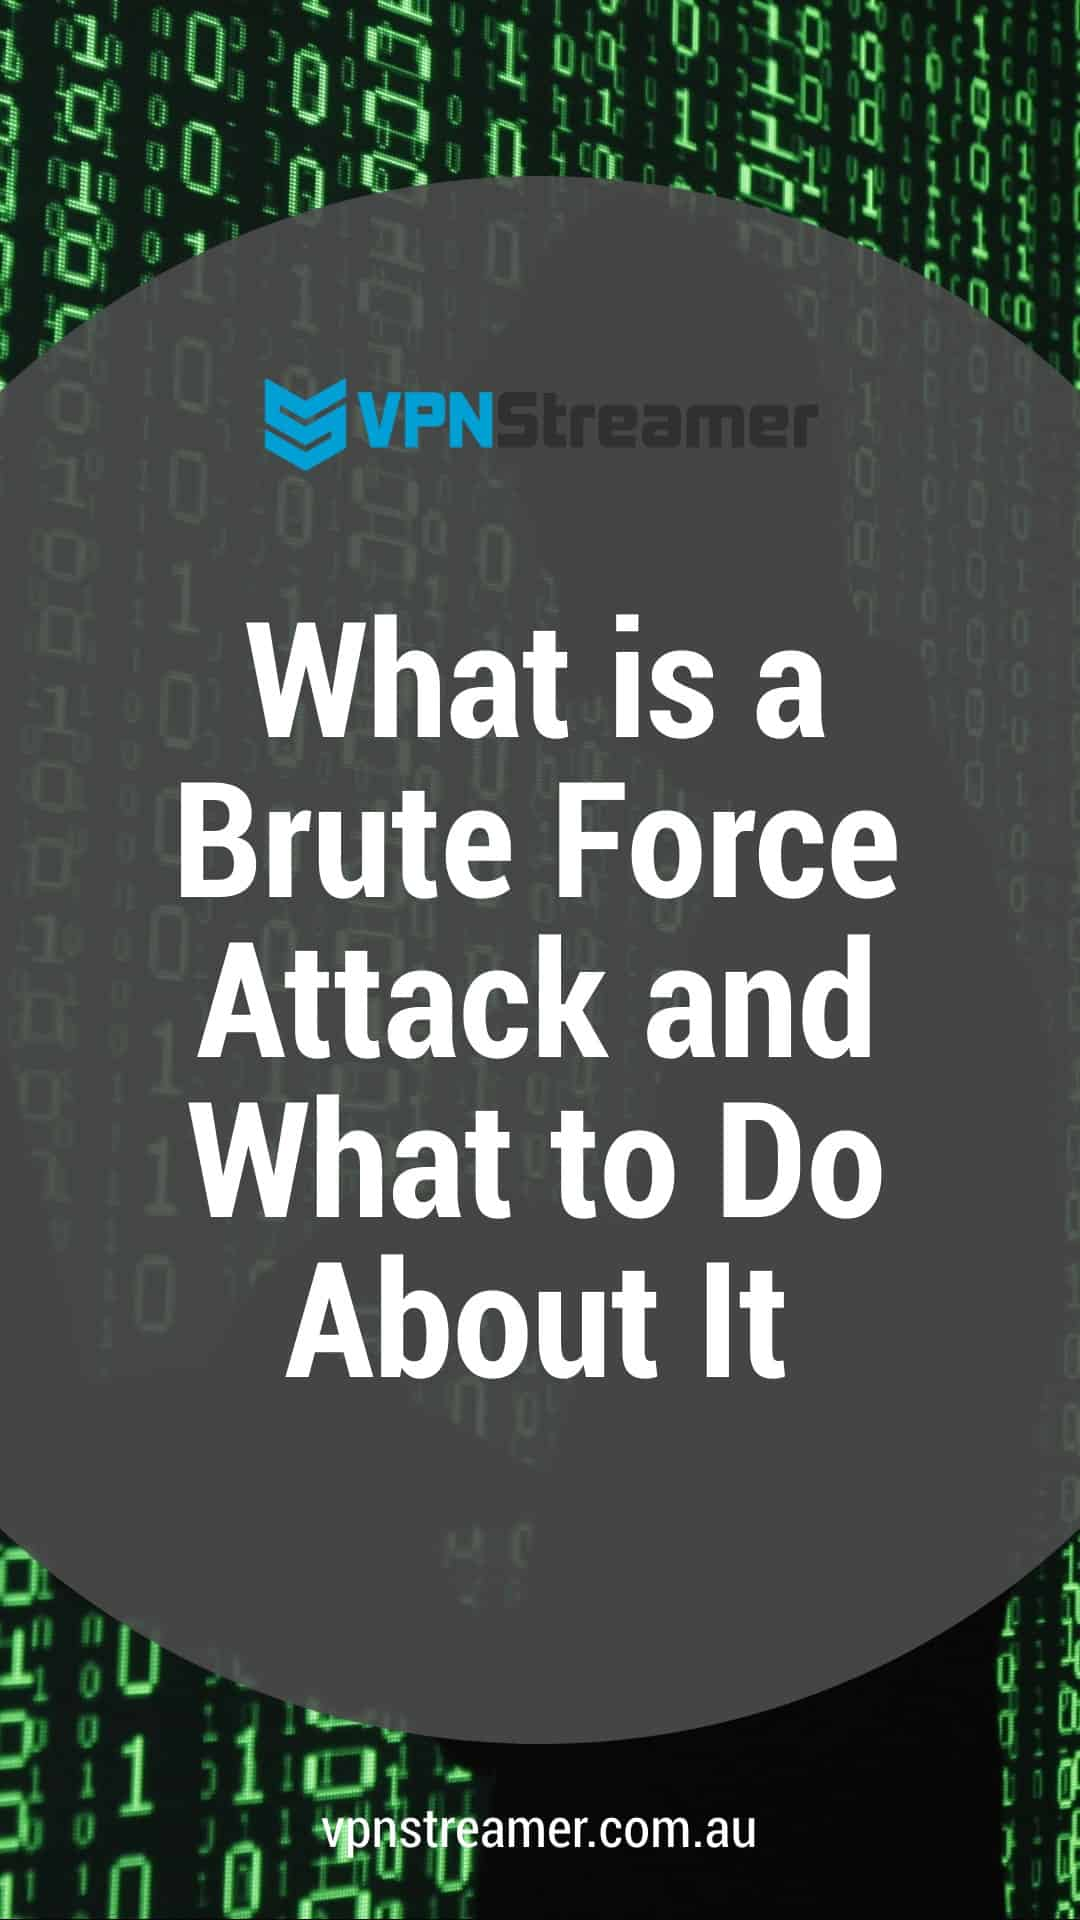 What is a Brute Force Attack and What to Do About It